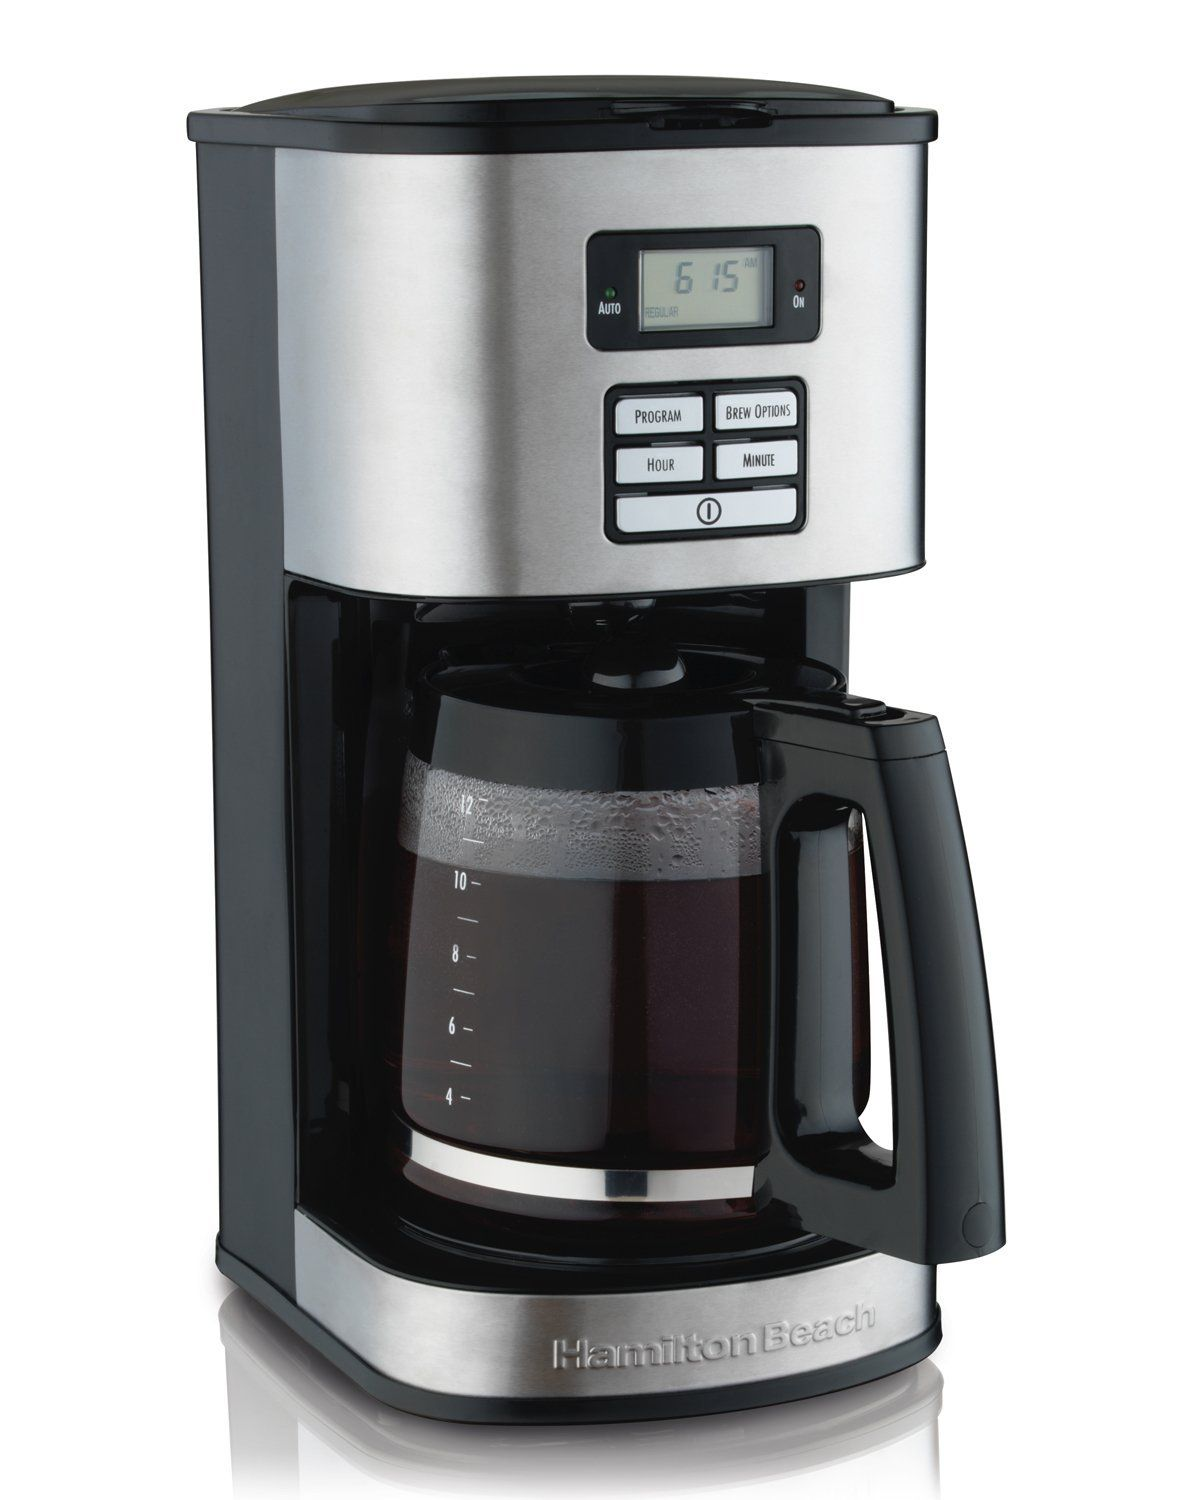 Single Cup Coffee Brewers Are As Popular As Ever But If You Re Not Doing This Important Step Regularly Single Serve Coffee Makers Keurig Coffee Makers Keurig